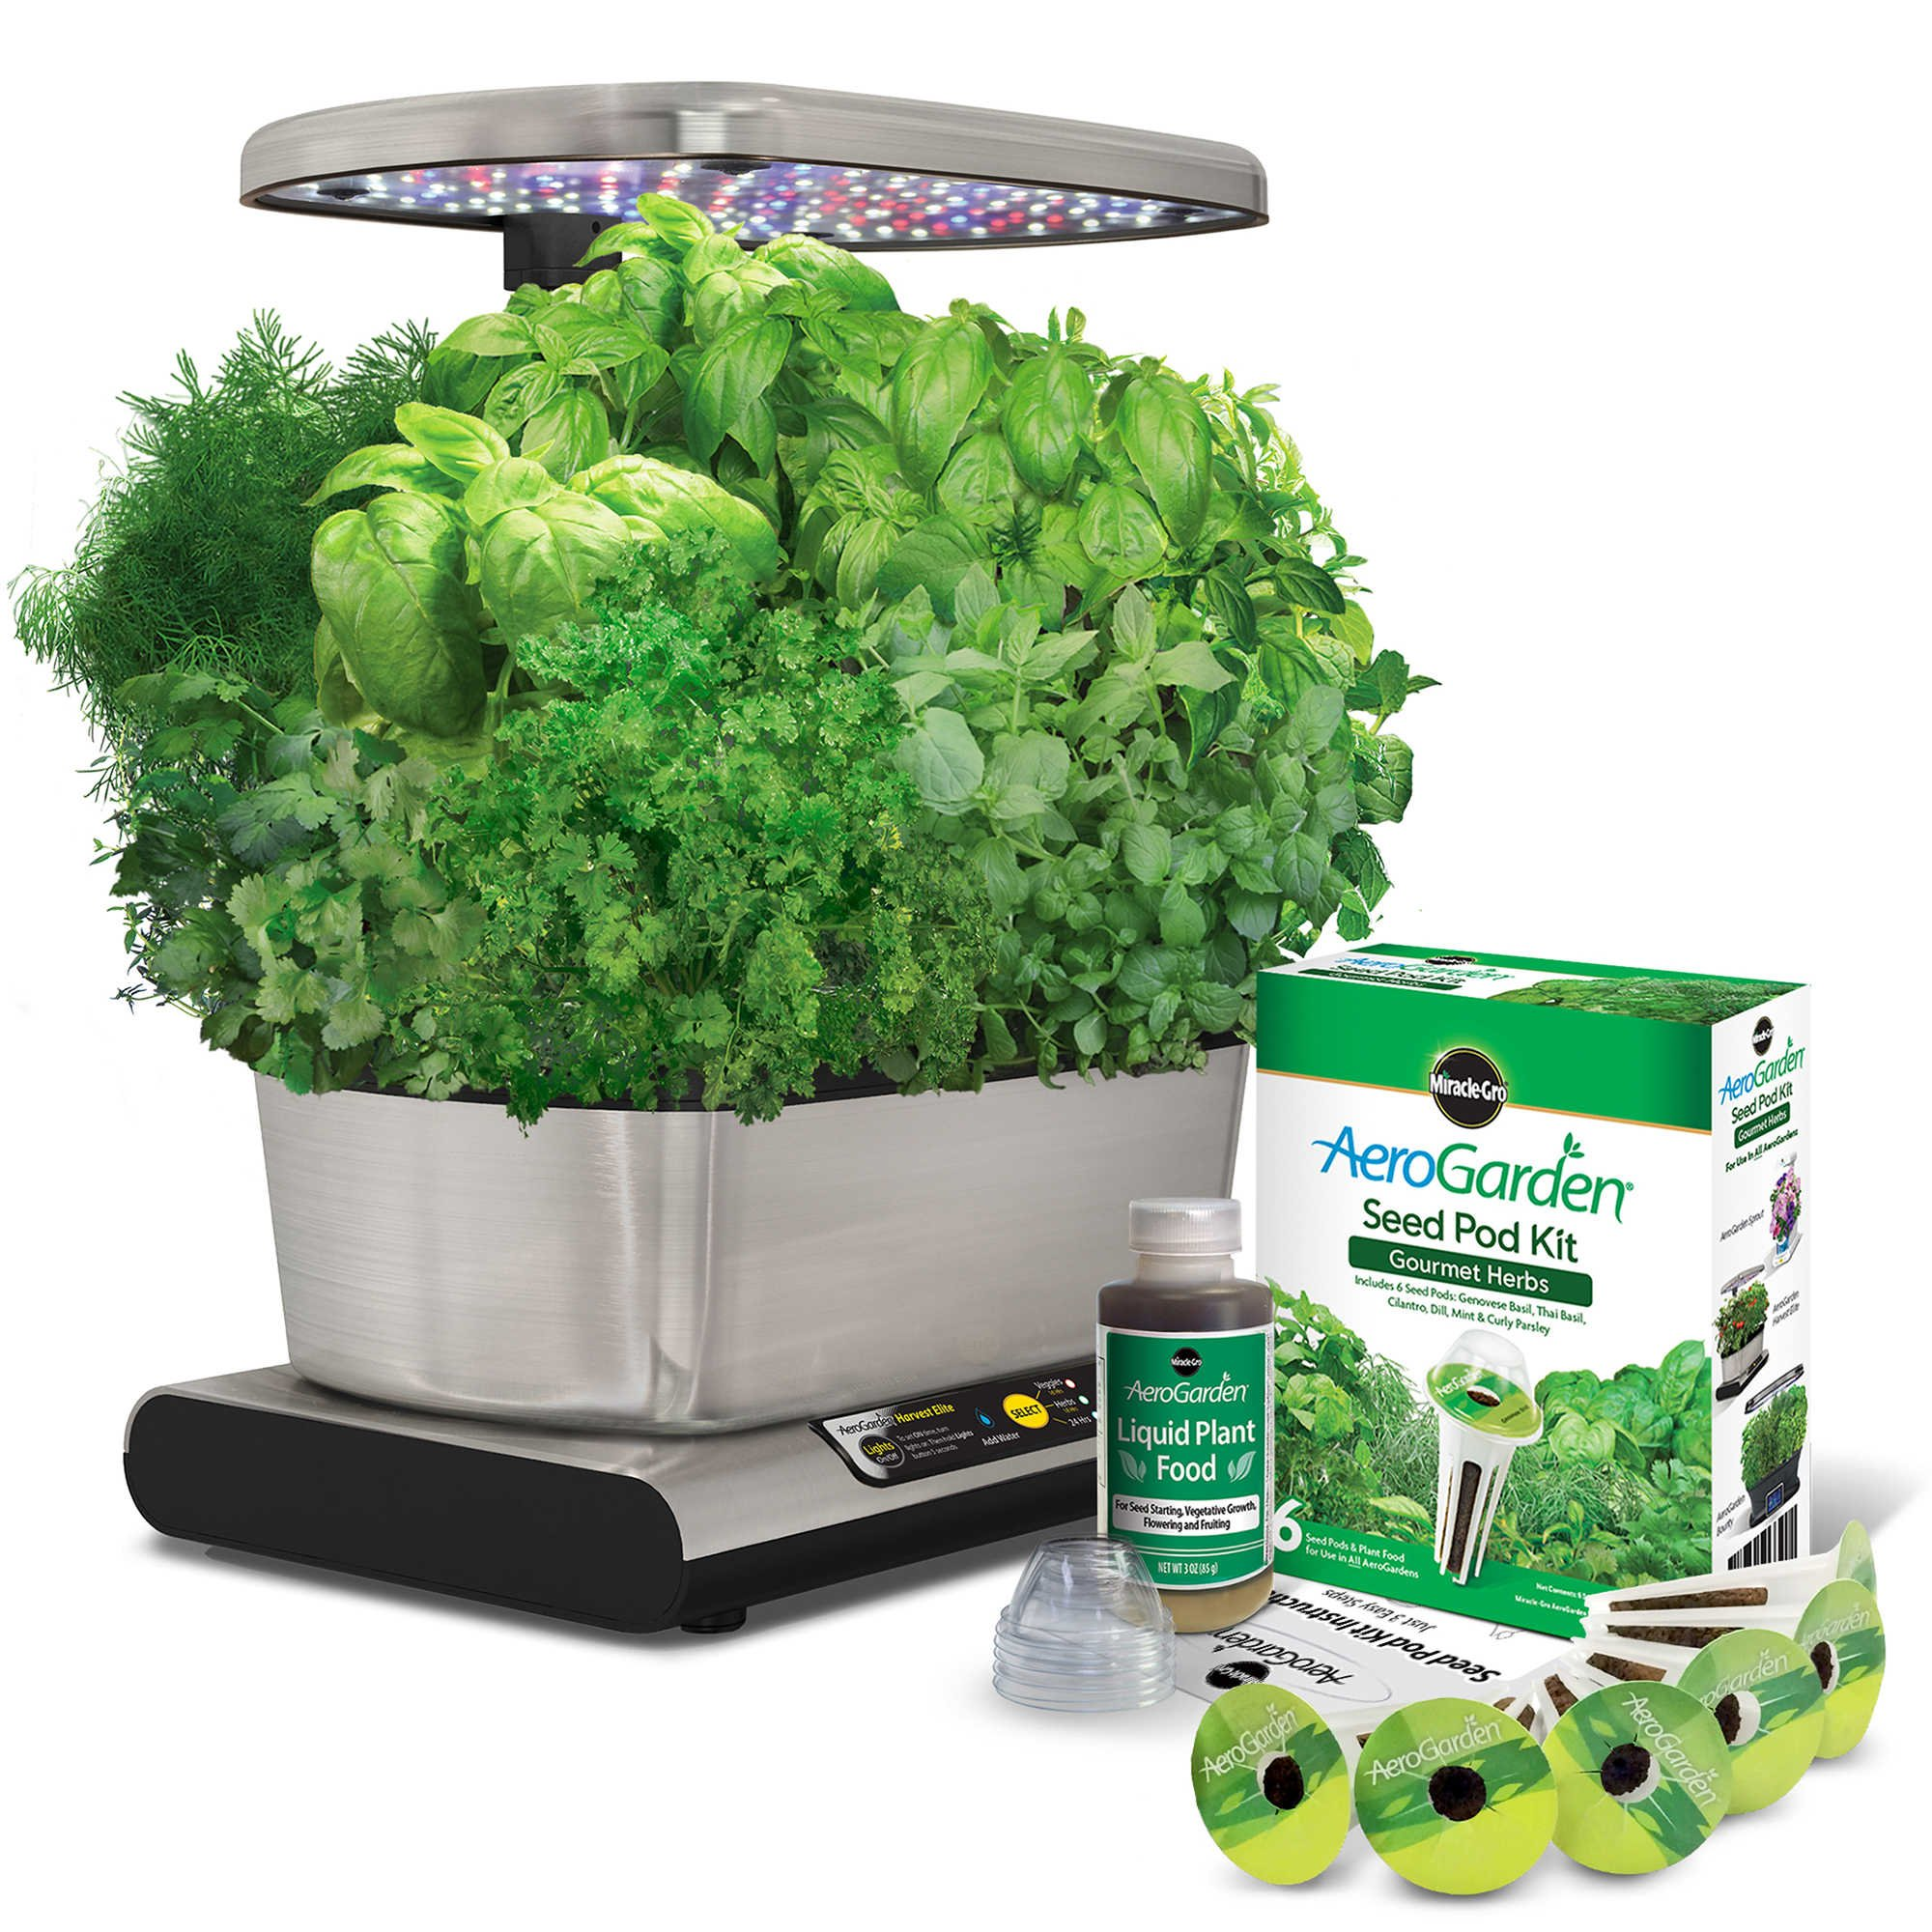 Miracle-Gro AeroGarden Smart Countertop Garden